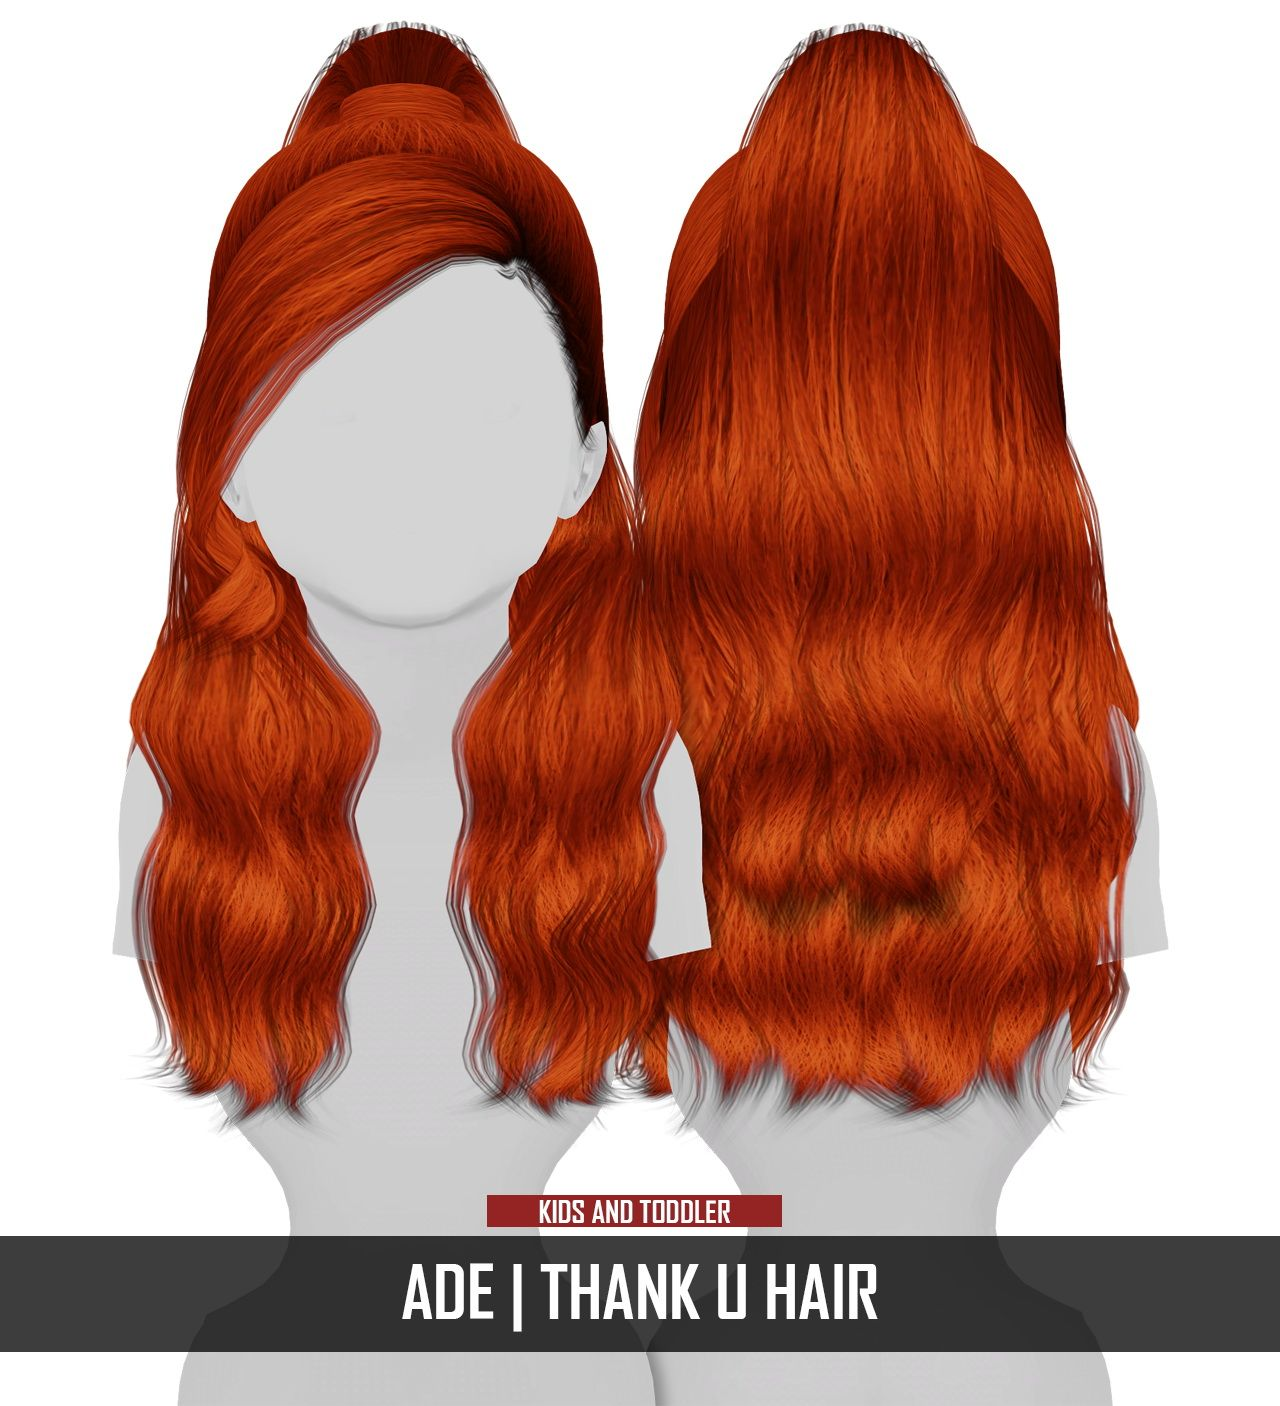 Coupure Electrique: AdeDarma`s Thank U hair retextured - kids and toddlers version #toddlers